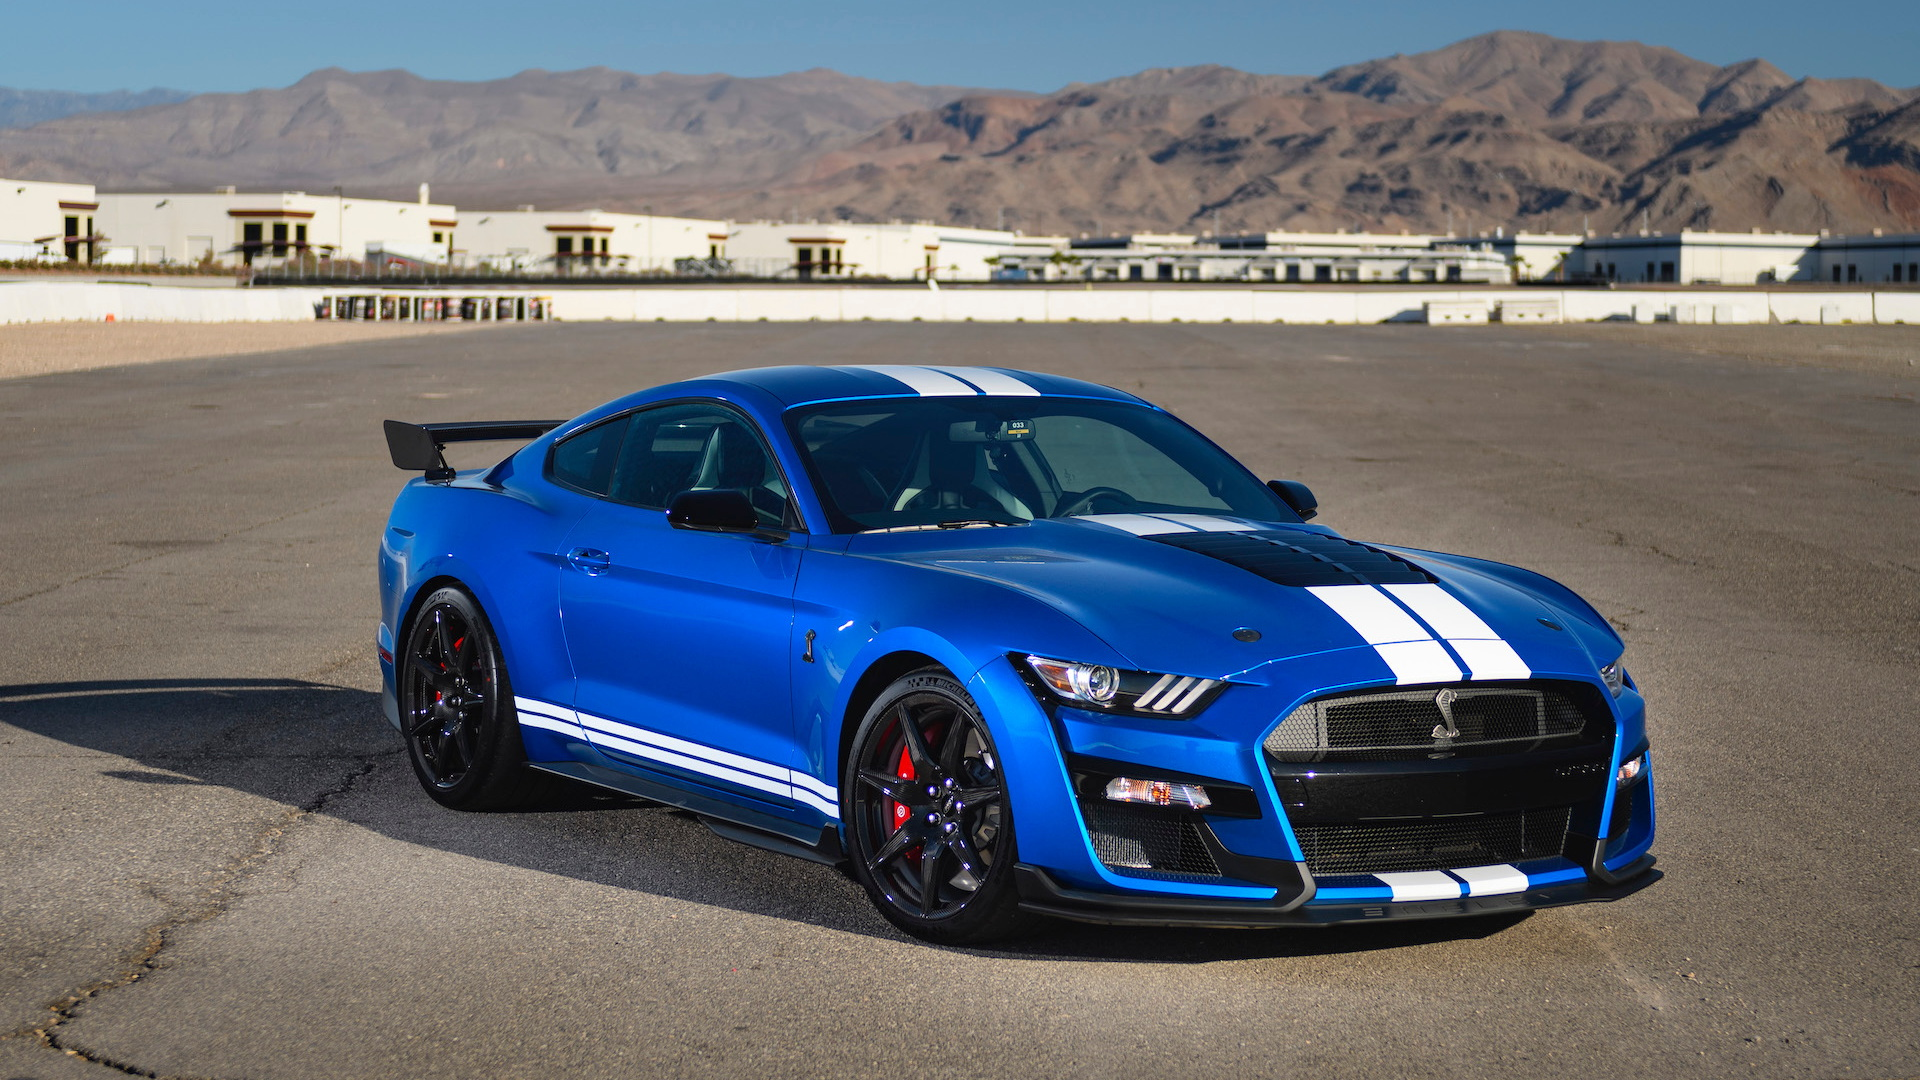 2020 Ford Mustang Shelby GT500 media drive, Las Vegas, October, 2019